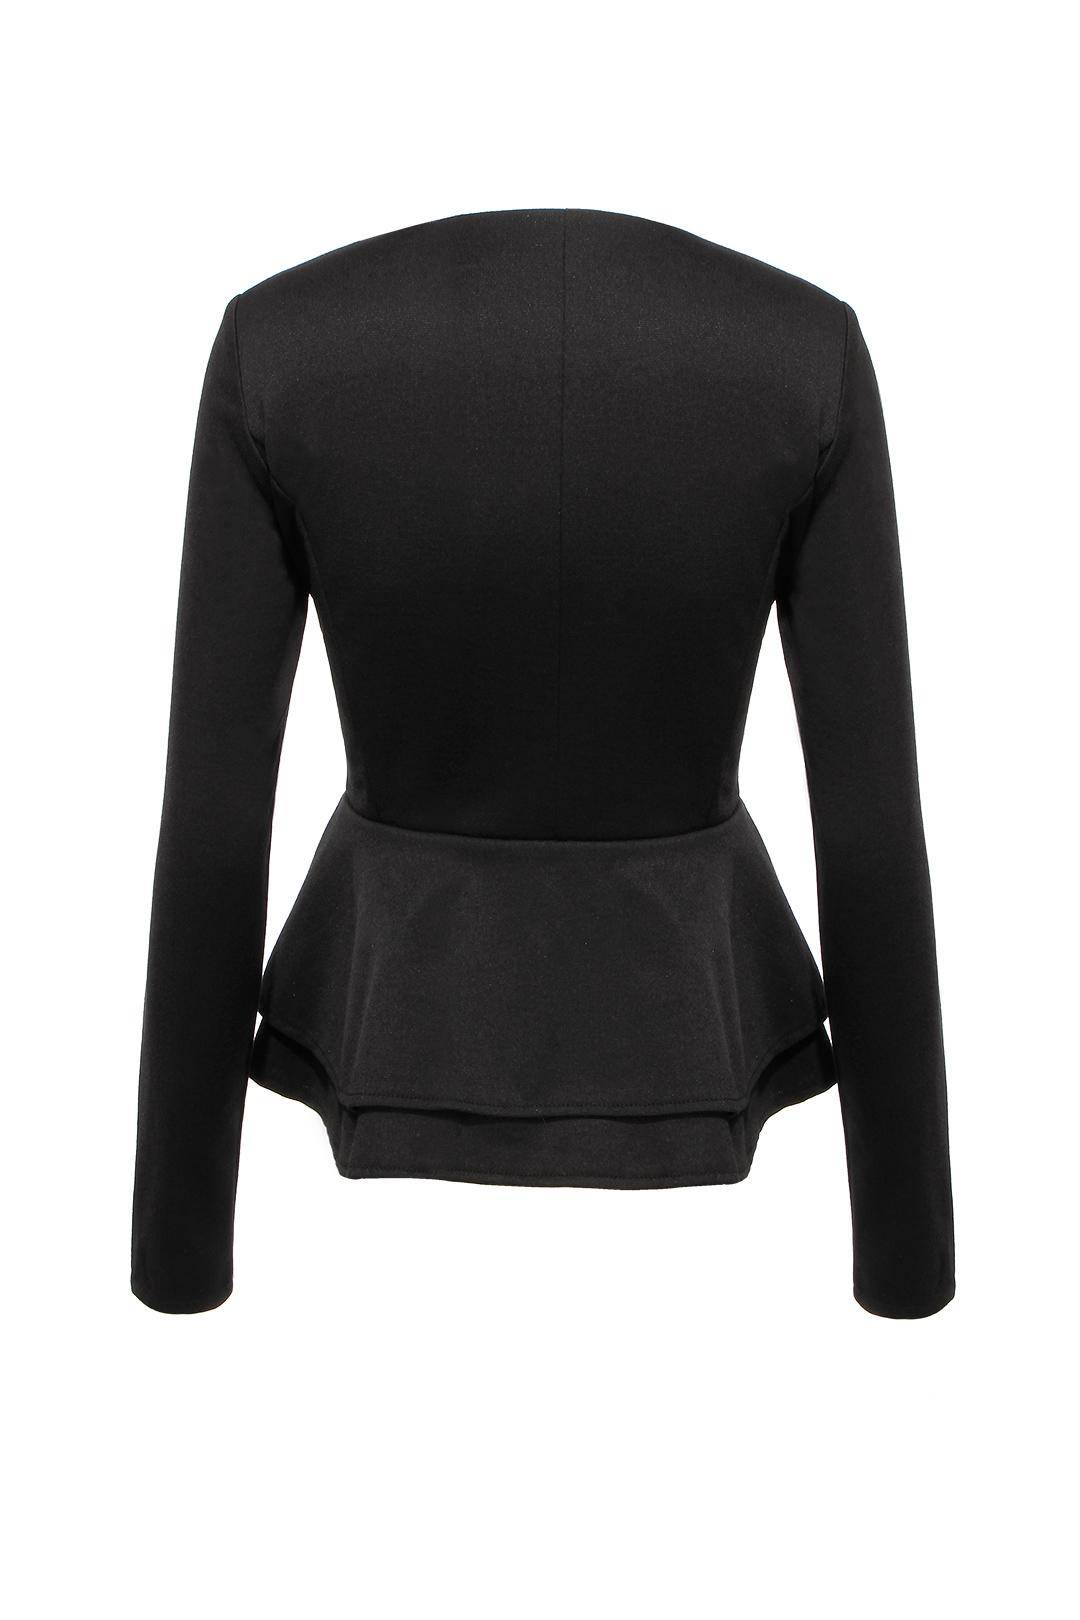 Black jacket with ruffle hem